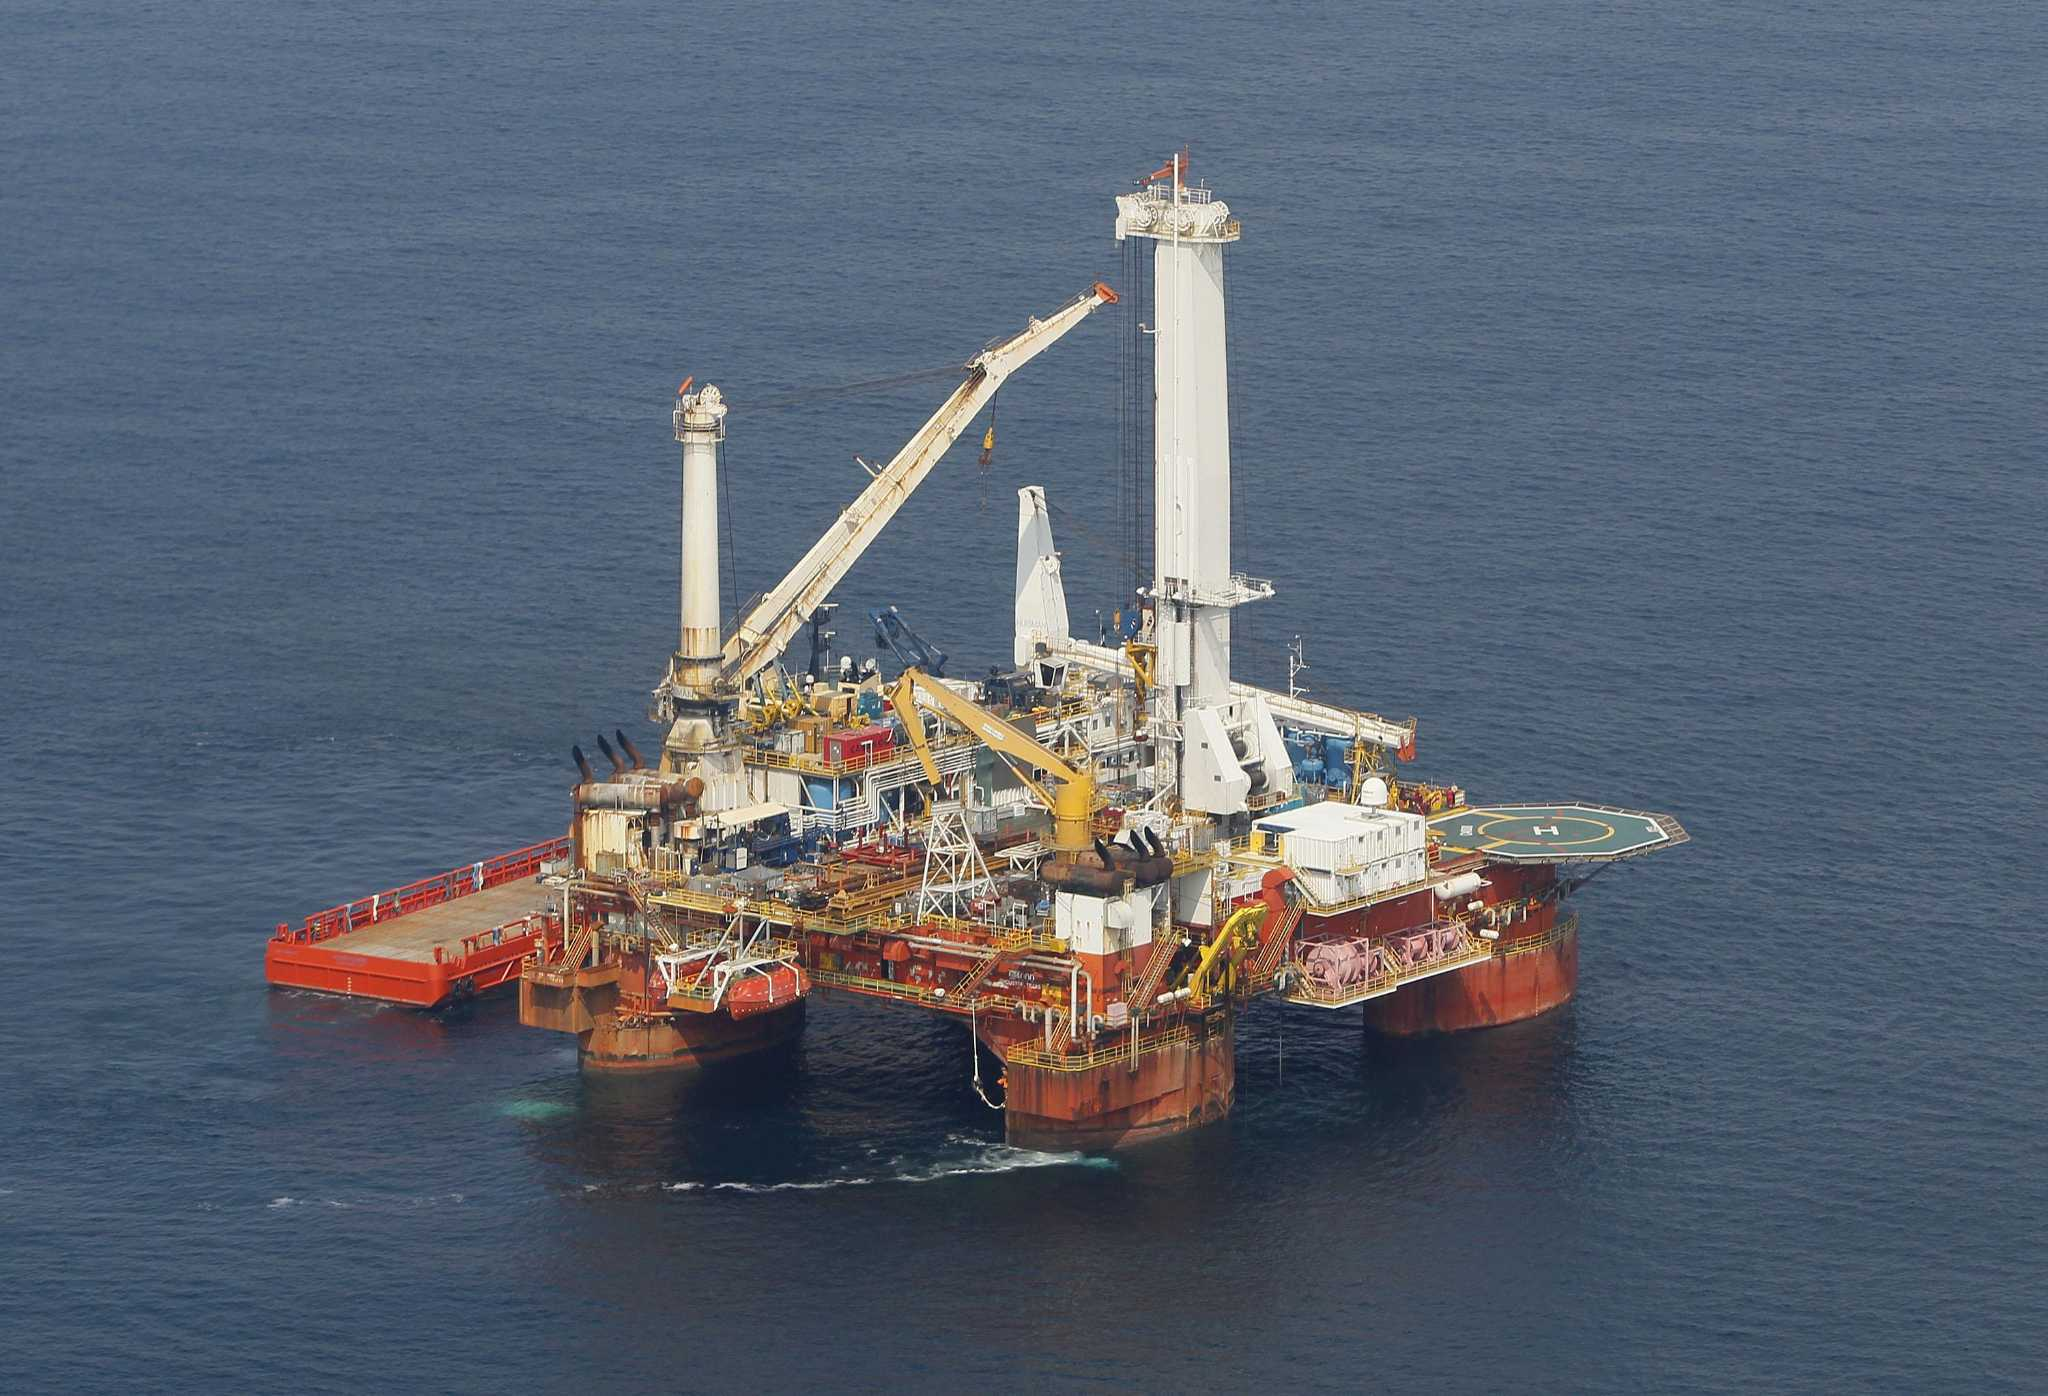 API urges offshore drillers to use automatic shutoff valves